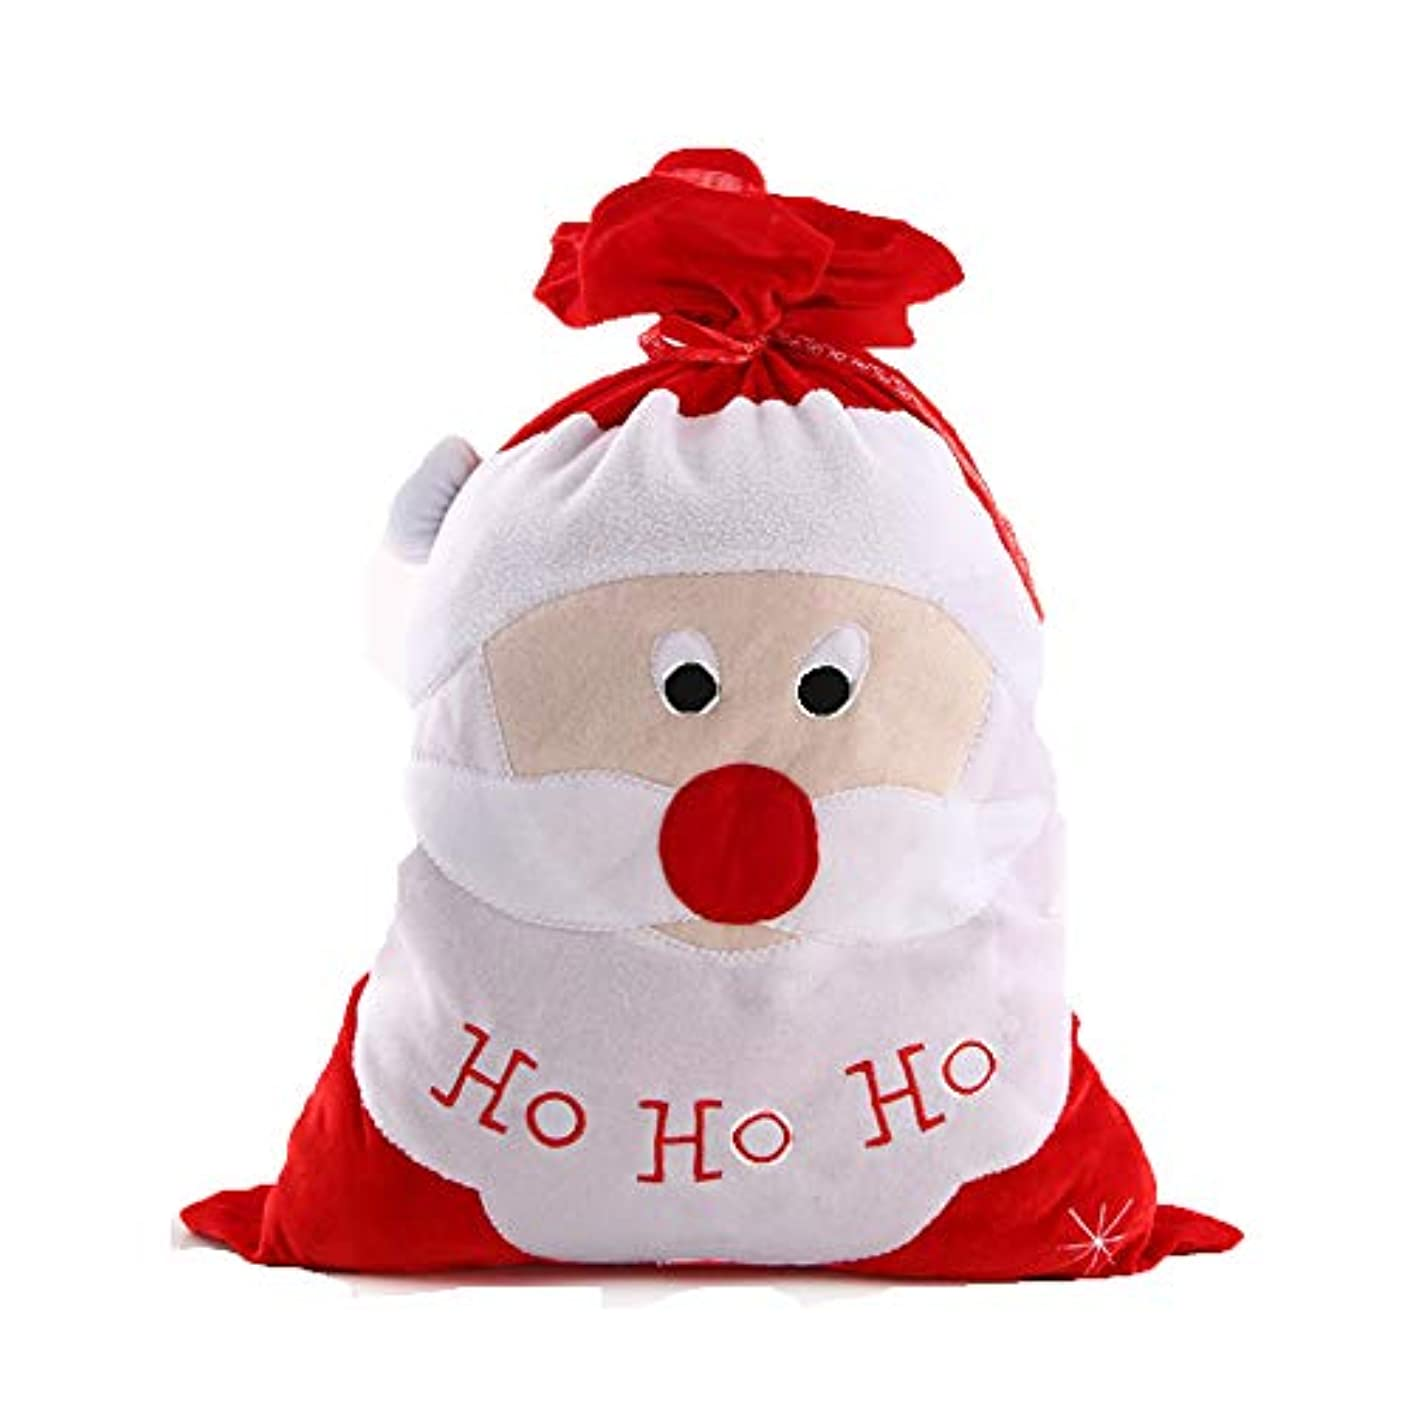 SCHOLMART Christmas Gift Bags, Santa Claus Belt Pattern Snack Big Christmas Present Bags Large Pocket for Family Kids Home Party Decorations (Santa Claus, Big Face)